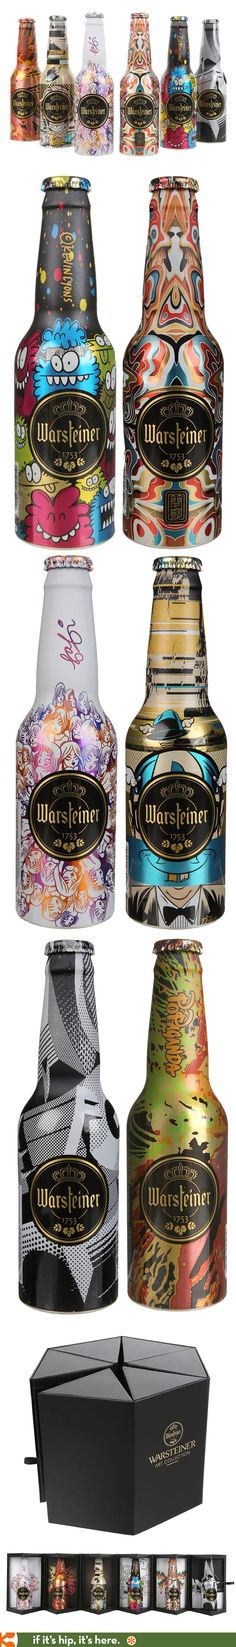 The 2014 Warsteiner Art Beer Collection. Six artist designed bottles by Kevin Lyons, Fafi, Ron English, D*Face, James Jean et Roids in one interesting package.